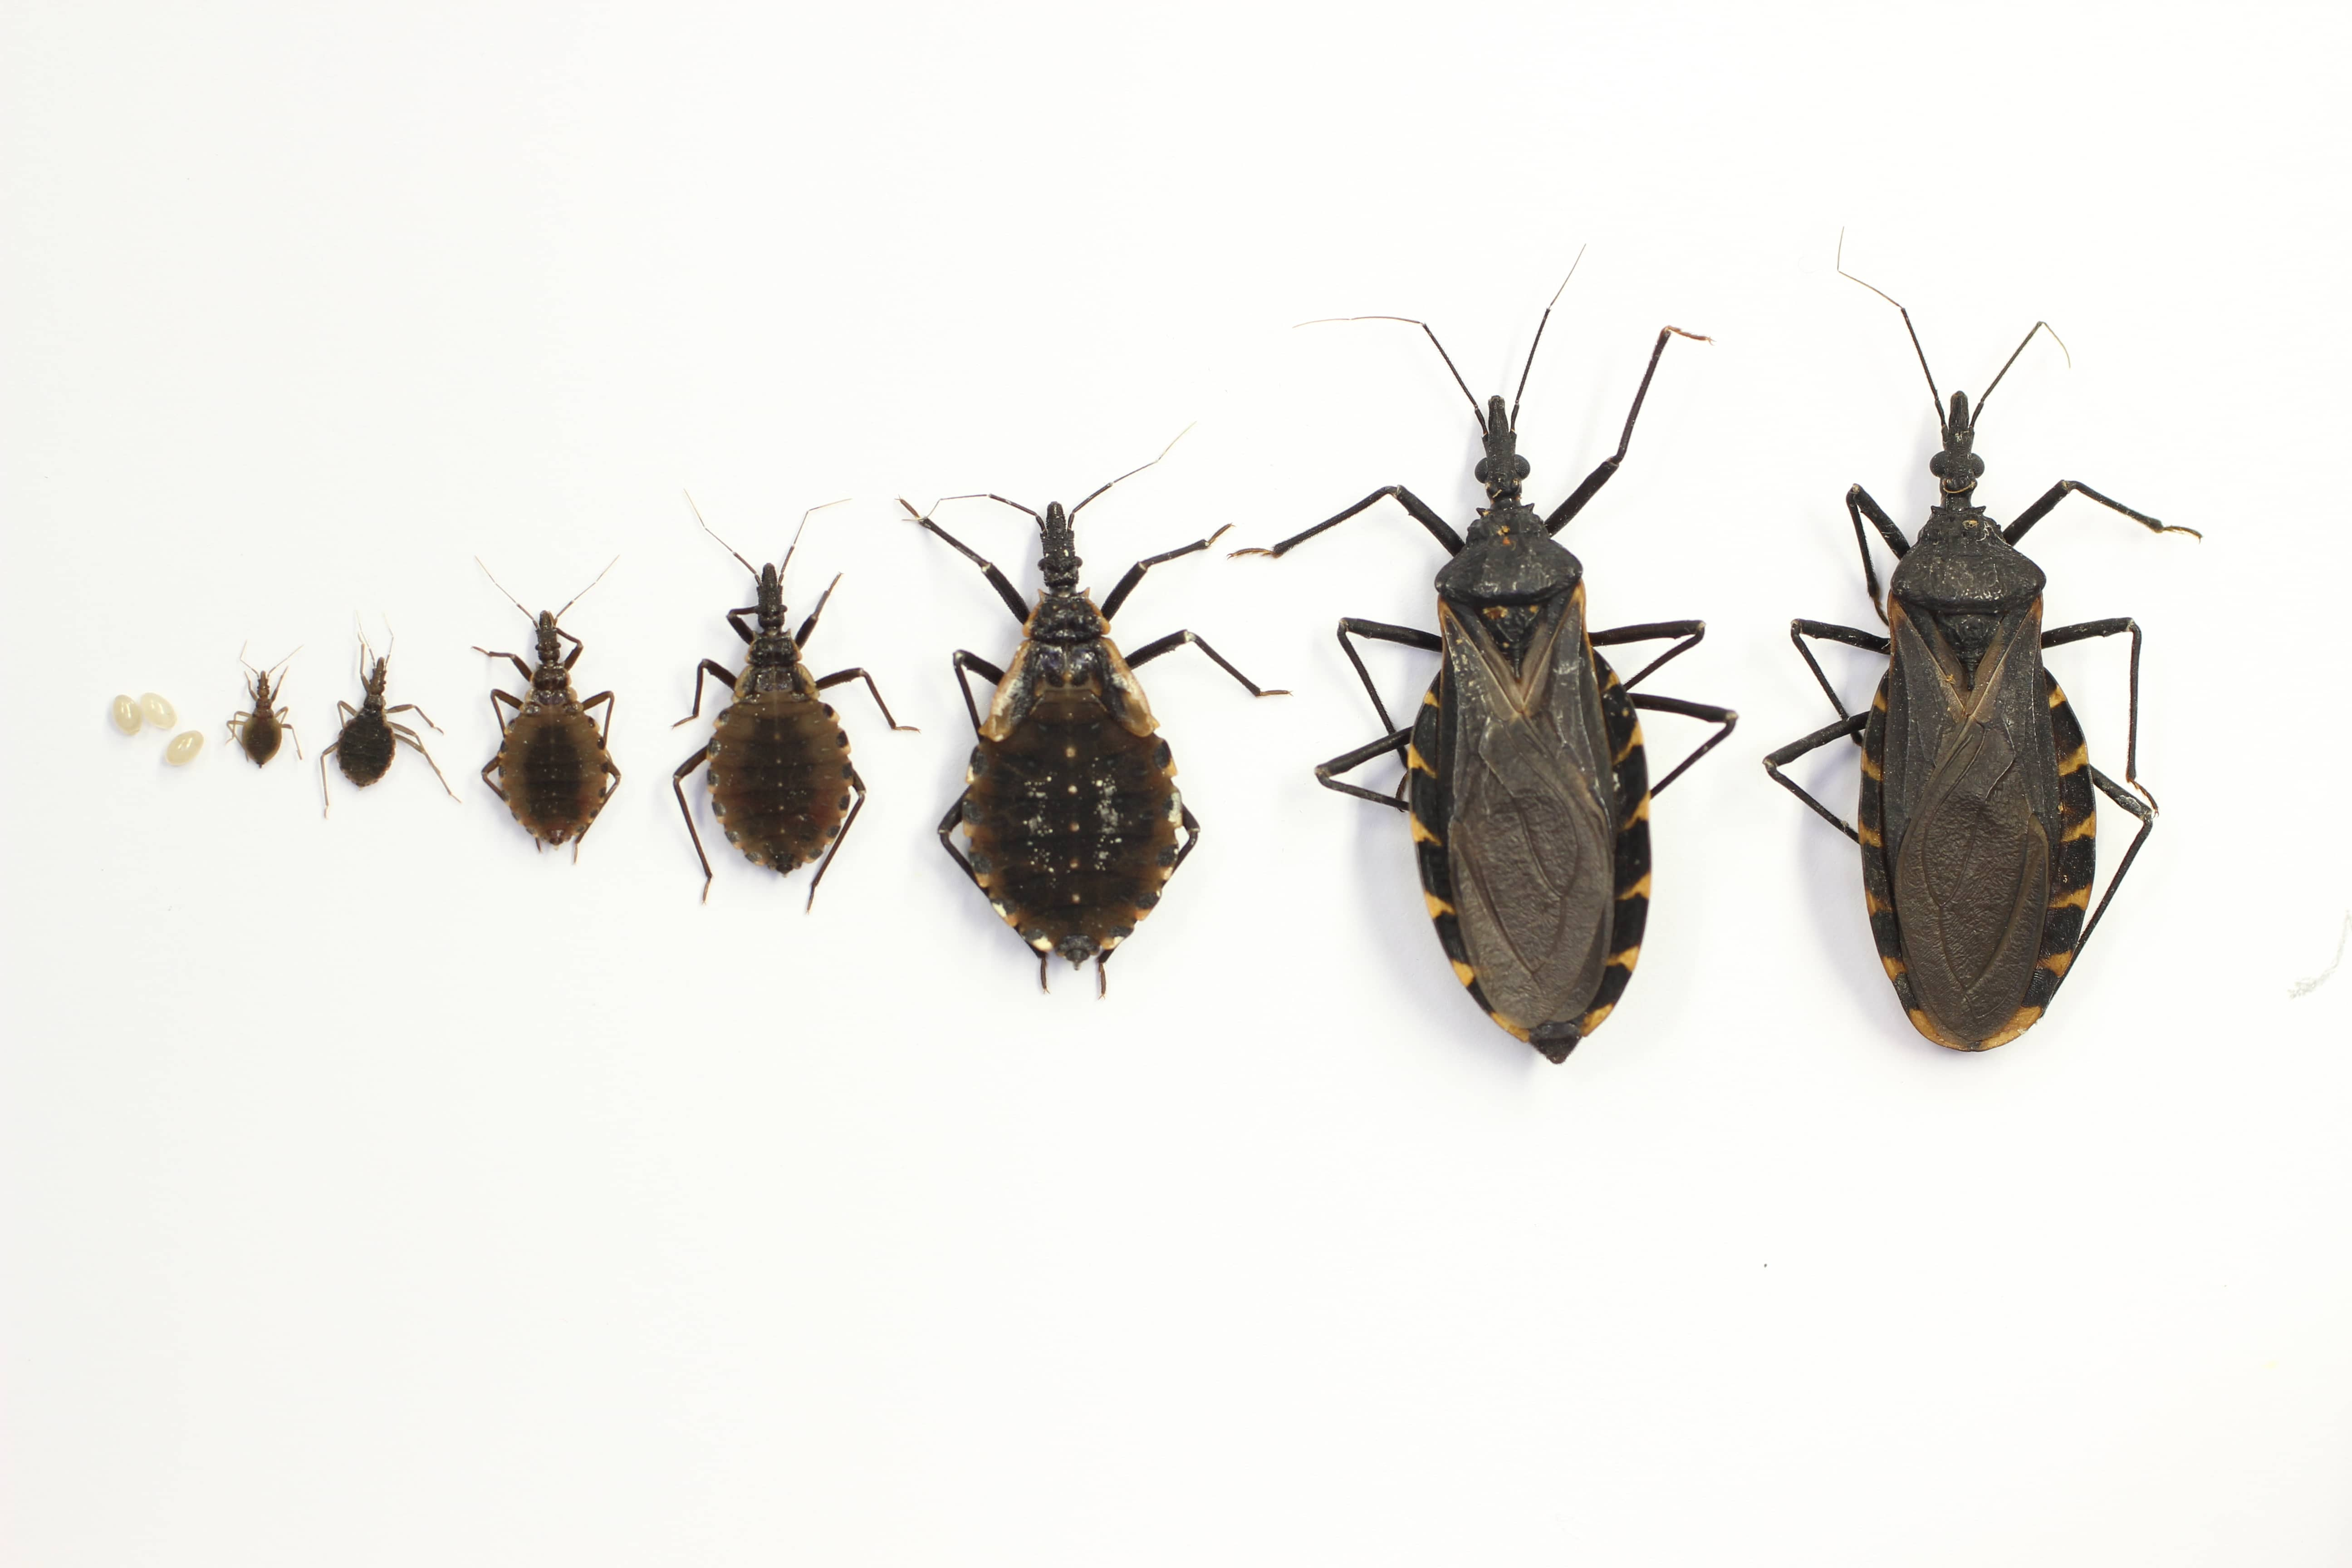 Lifecycle stages of a kissing bug, including larval and adults stages.